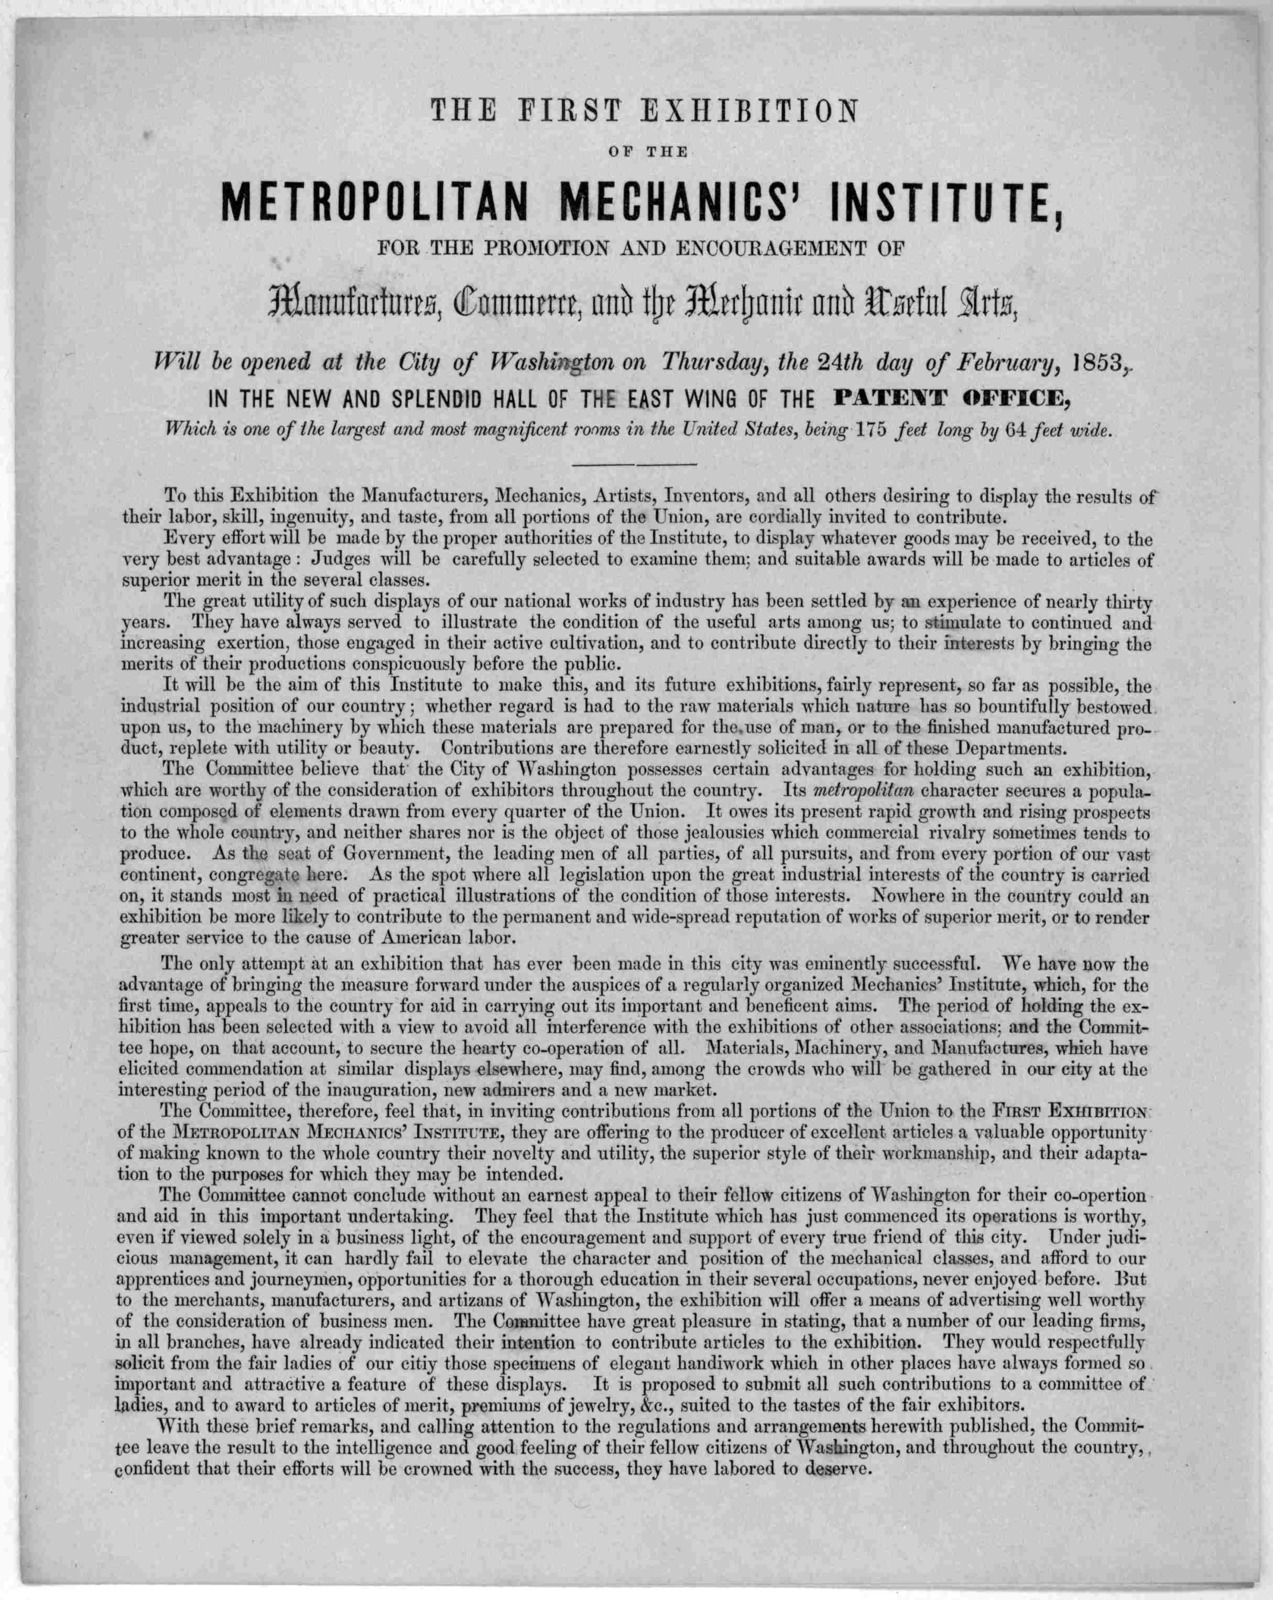 The first exhibition of the Metropolitan mechanics' institute, for the promotion and encouragement of manufactures, commerce, and the mechanics and useful arts, will be opened at the City of Washington on Thursday, the 24th day of February, 1853